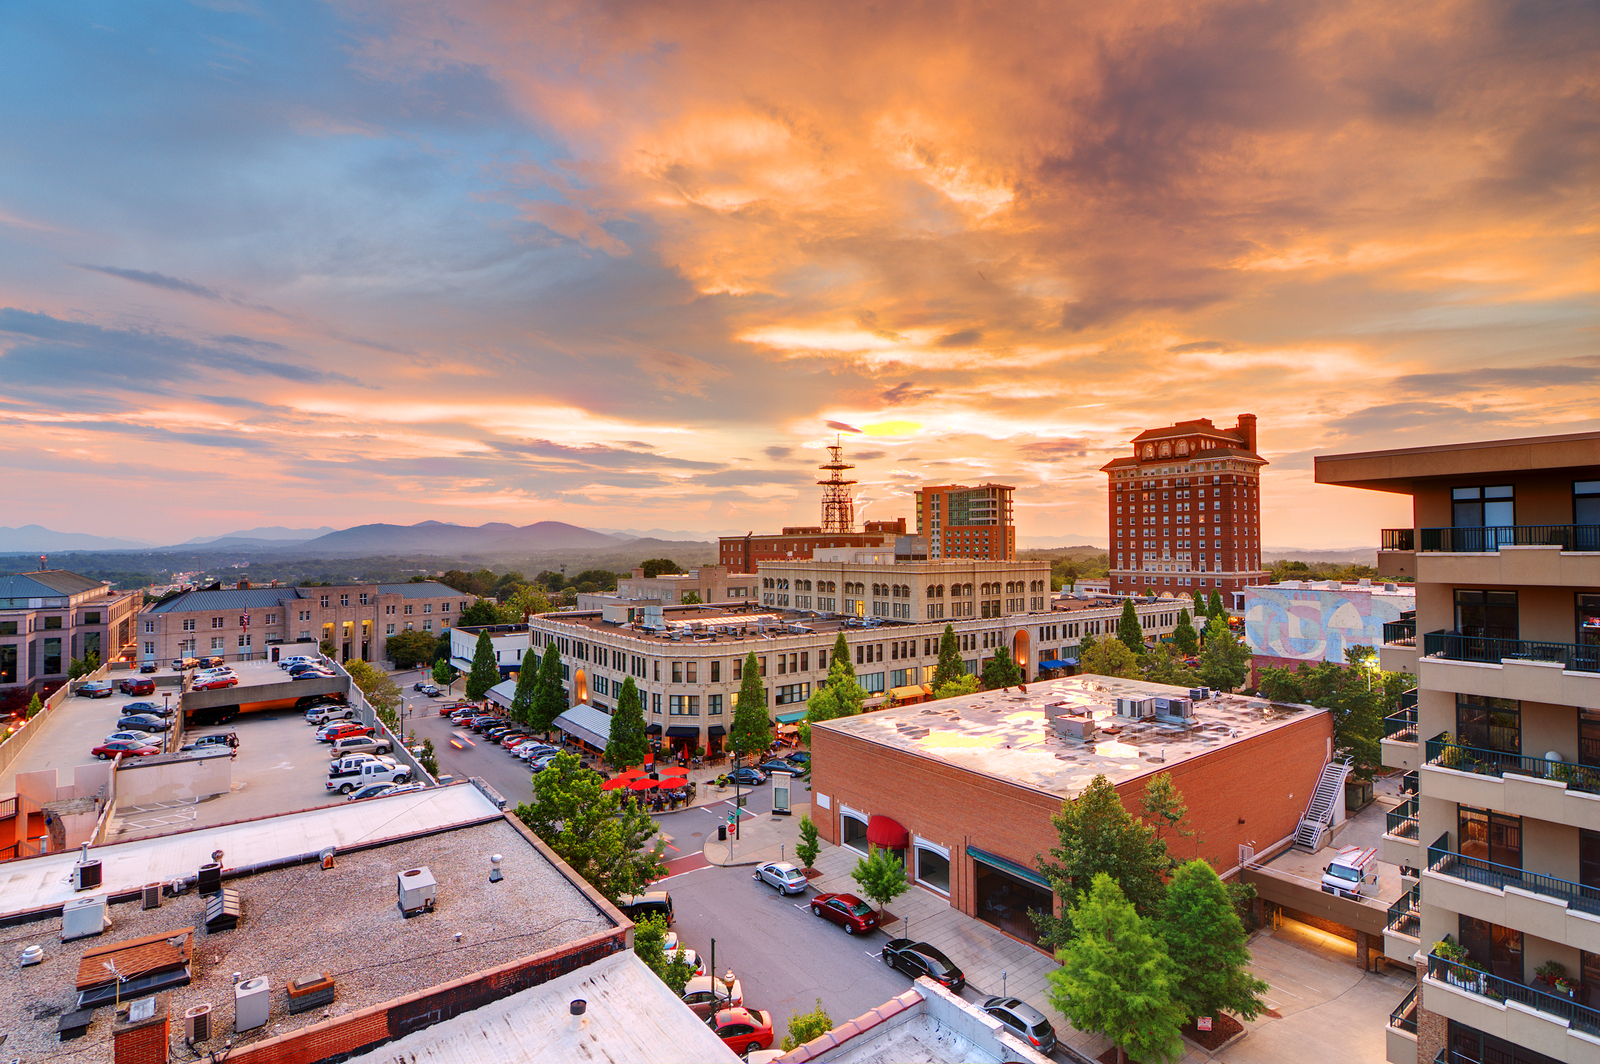 bigstock-Downtown-Asheville-North-Caro-3